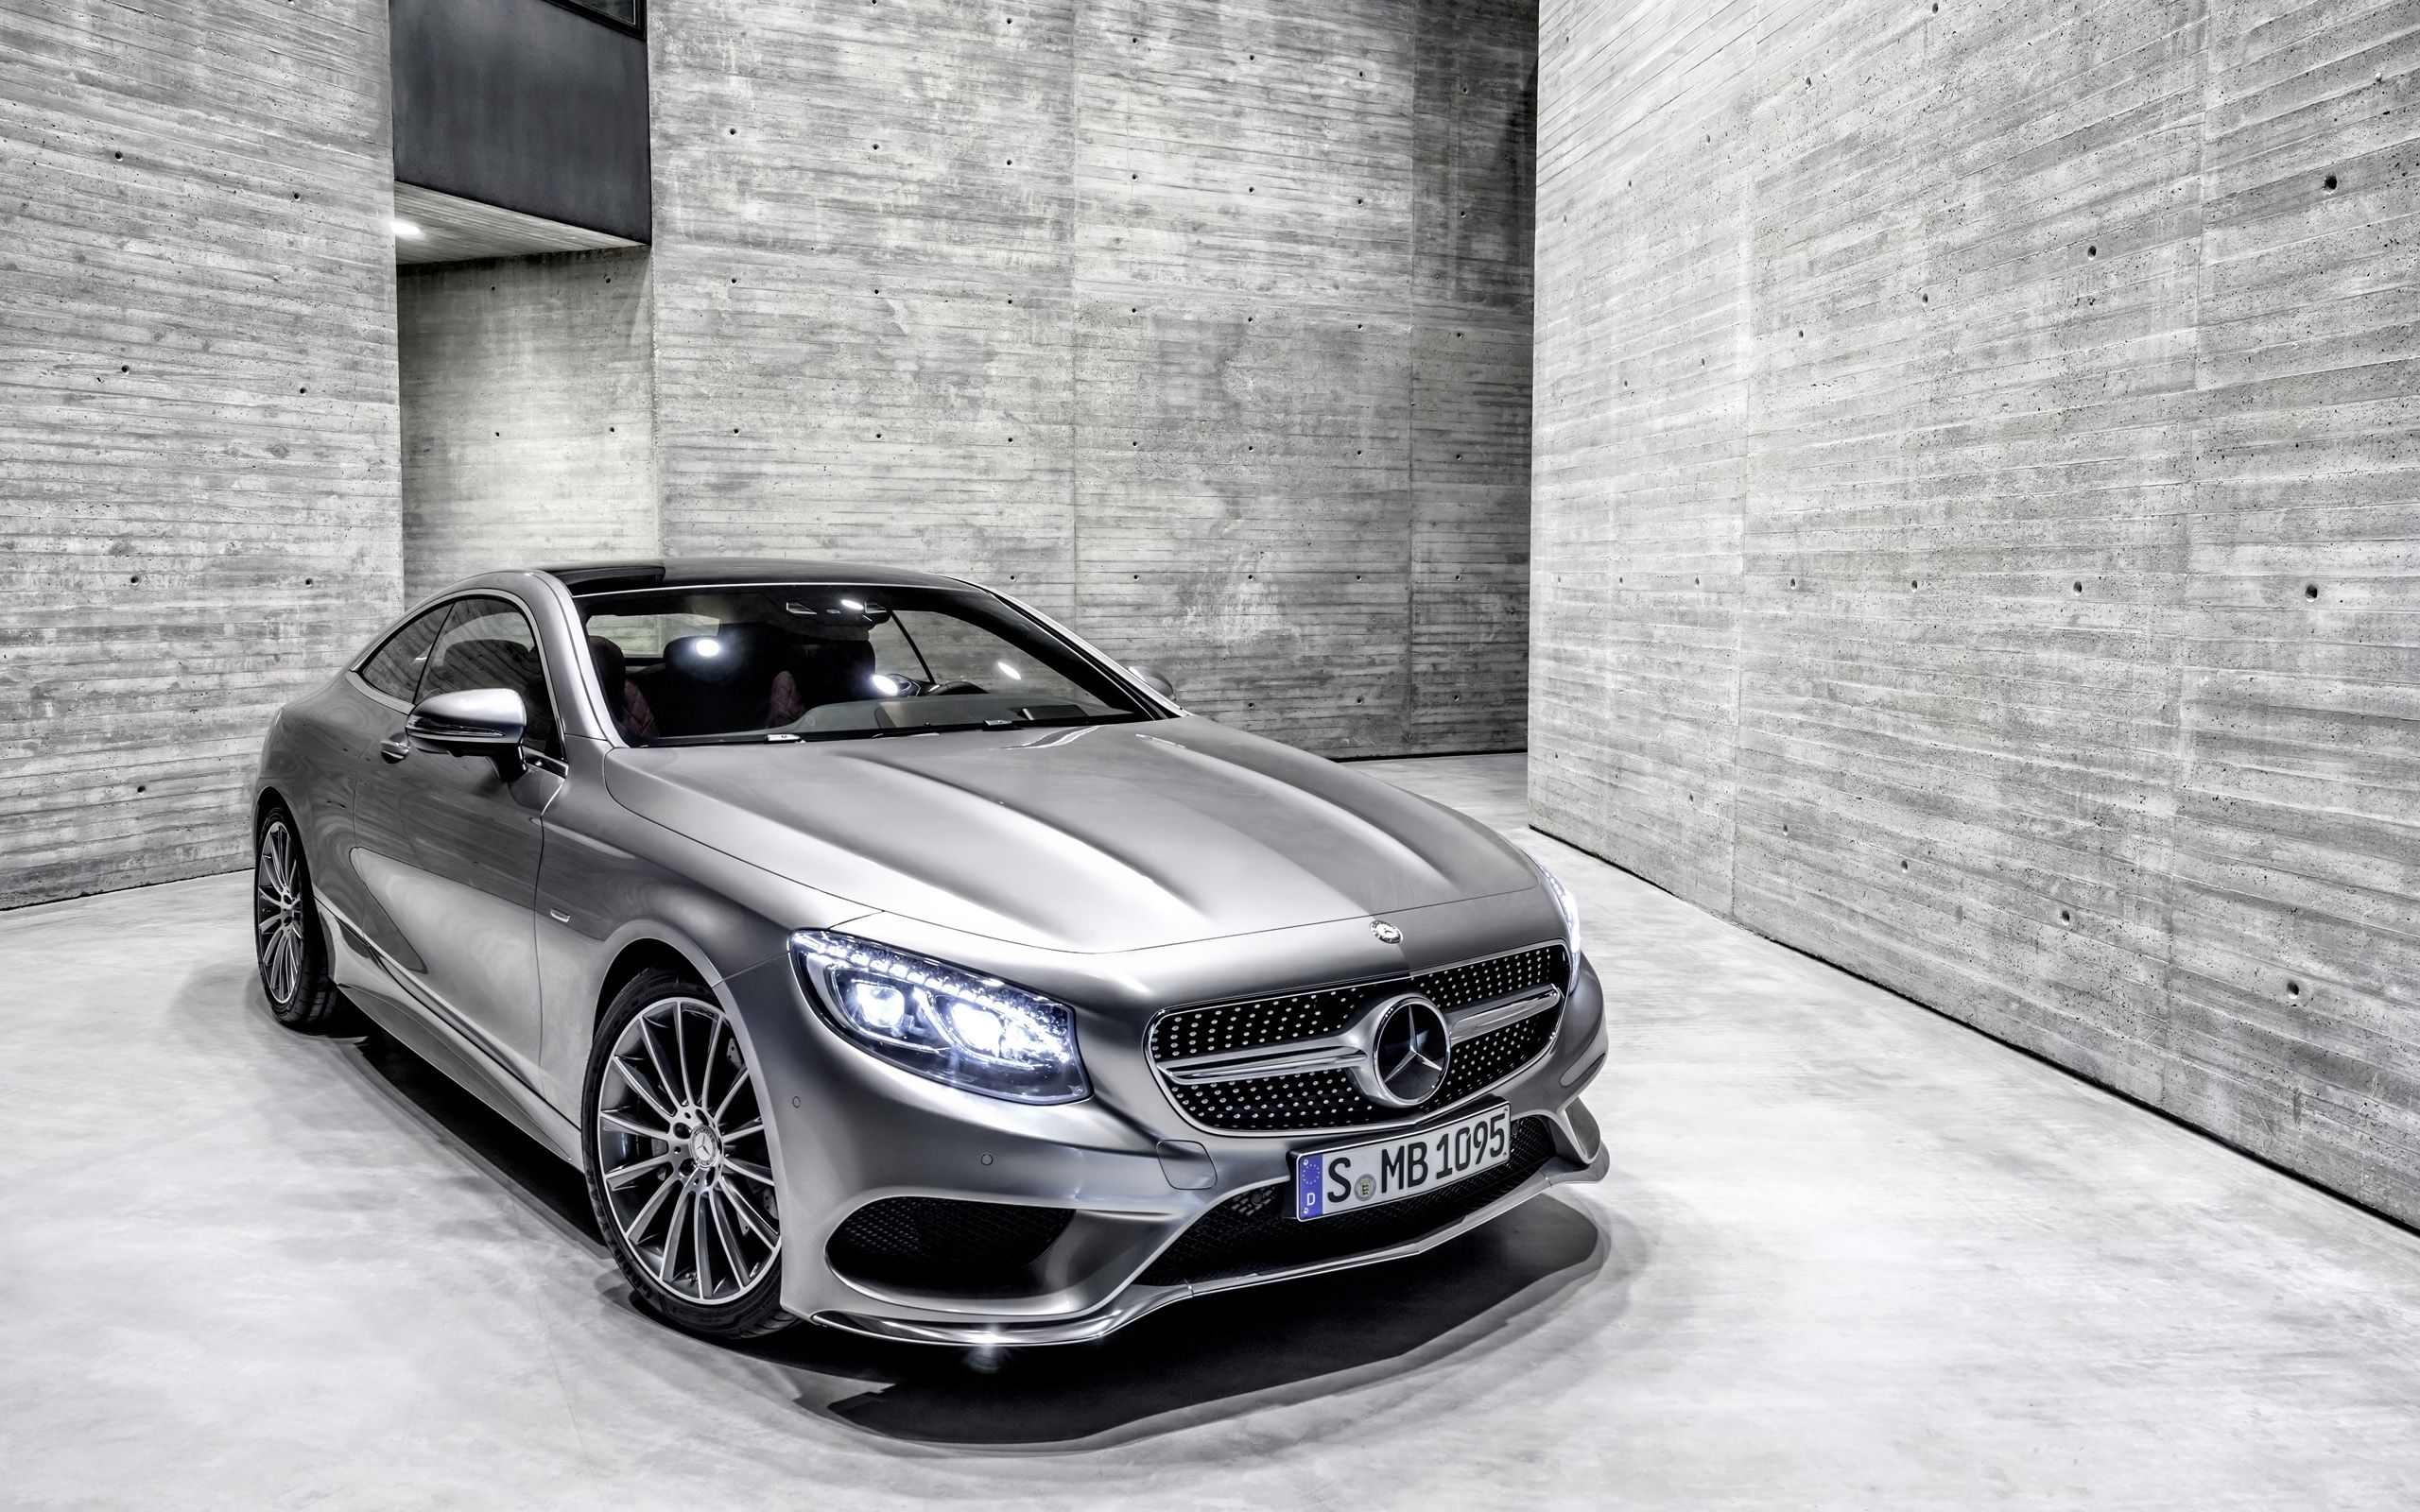 Mercedes benz s class w221 road luxury cars mercedes cars wallpapers pinterest